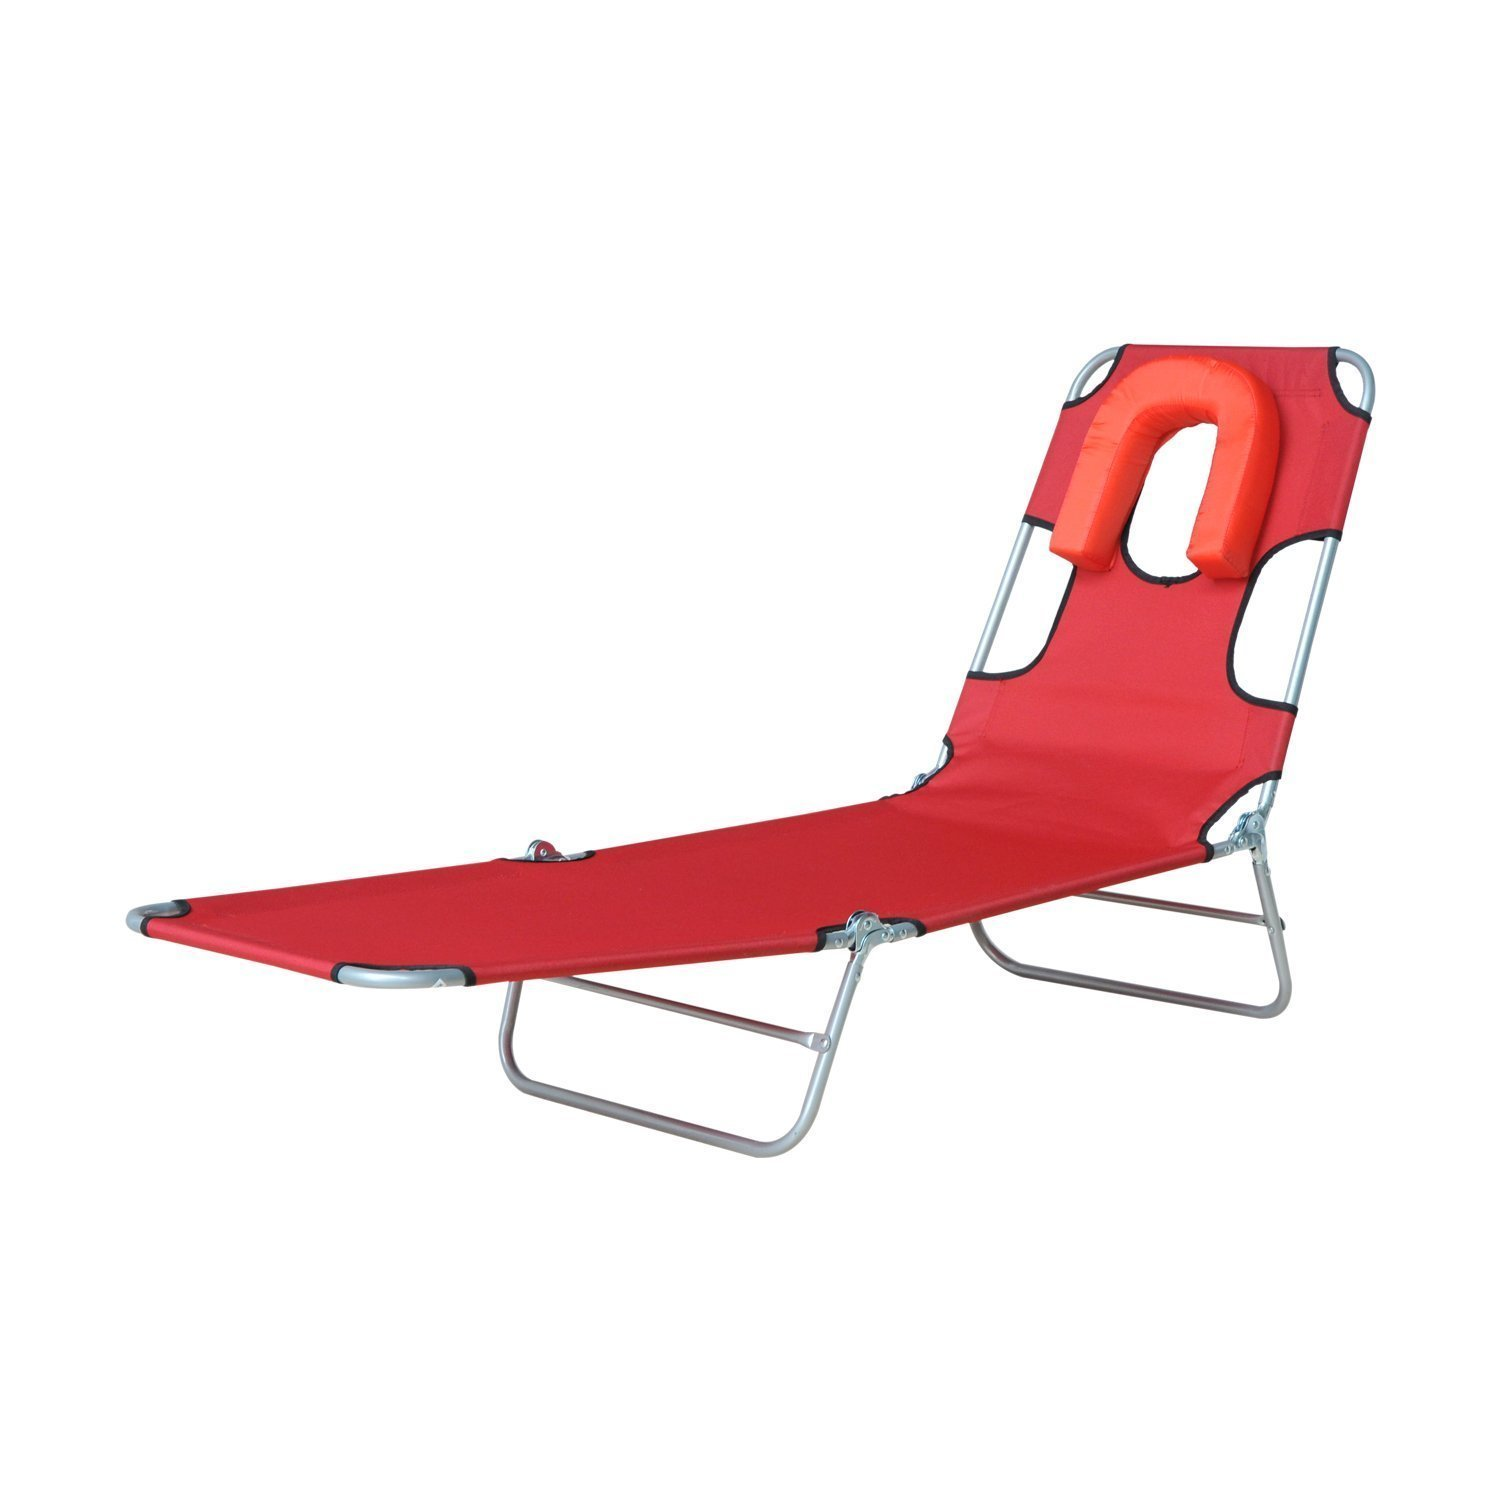 Lounge Chairs Online Shopping For Clothing Shoes